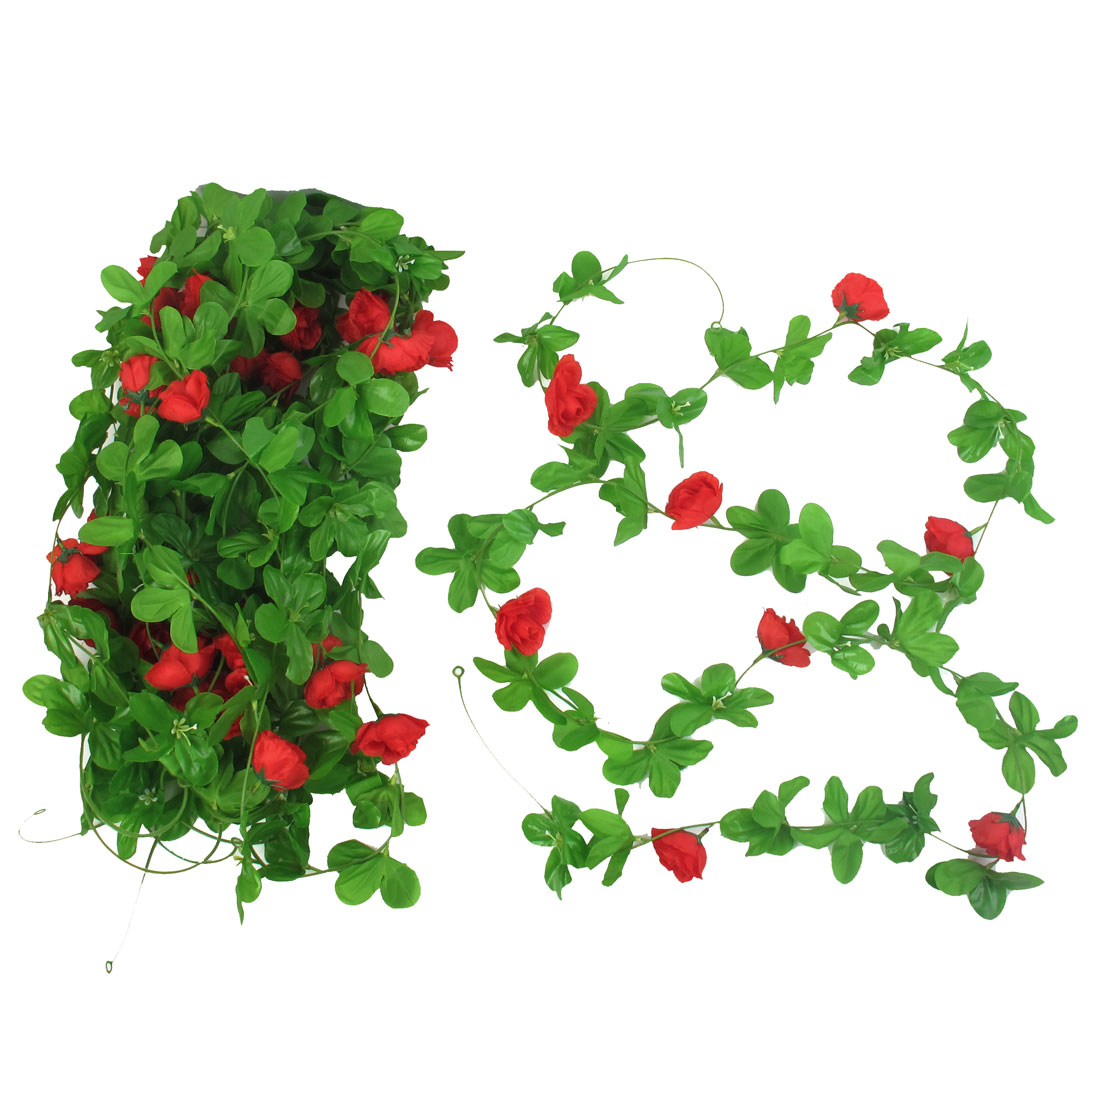 5 Pcs 2.4M Long Green Red Plastic Fabric Artificial Rose Flower Emulational Ornament Hanging Vine